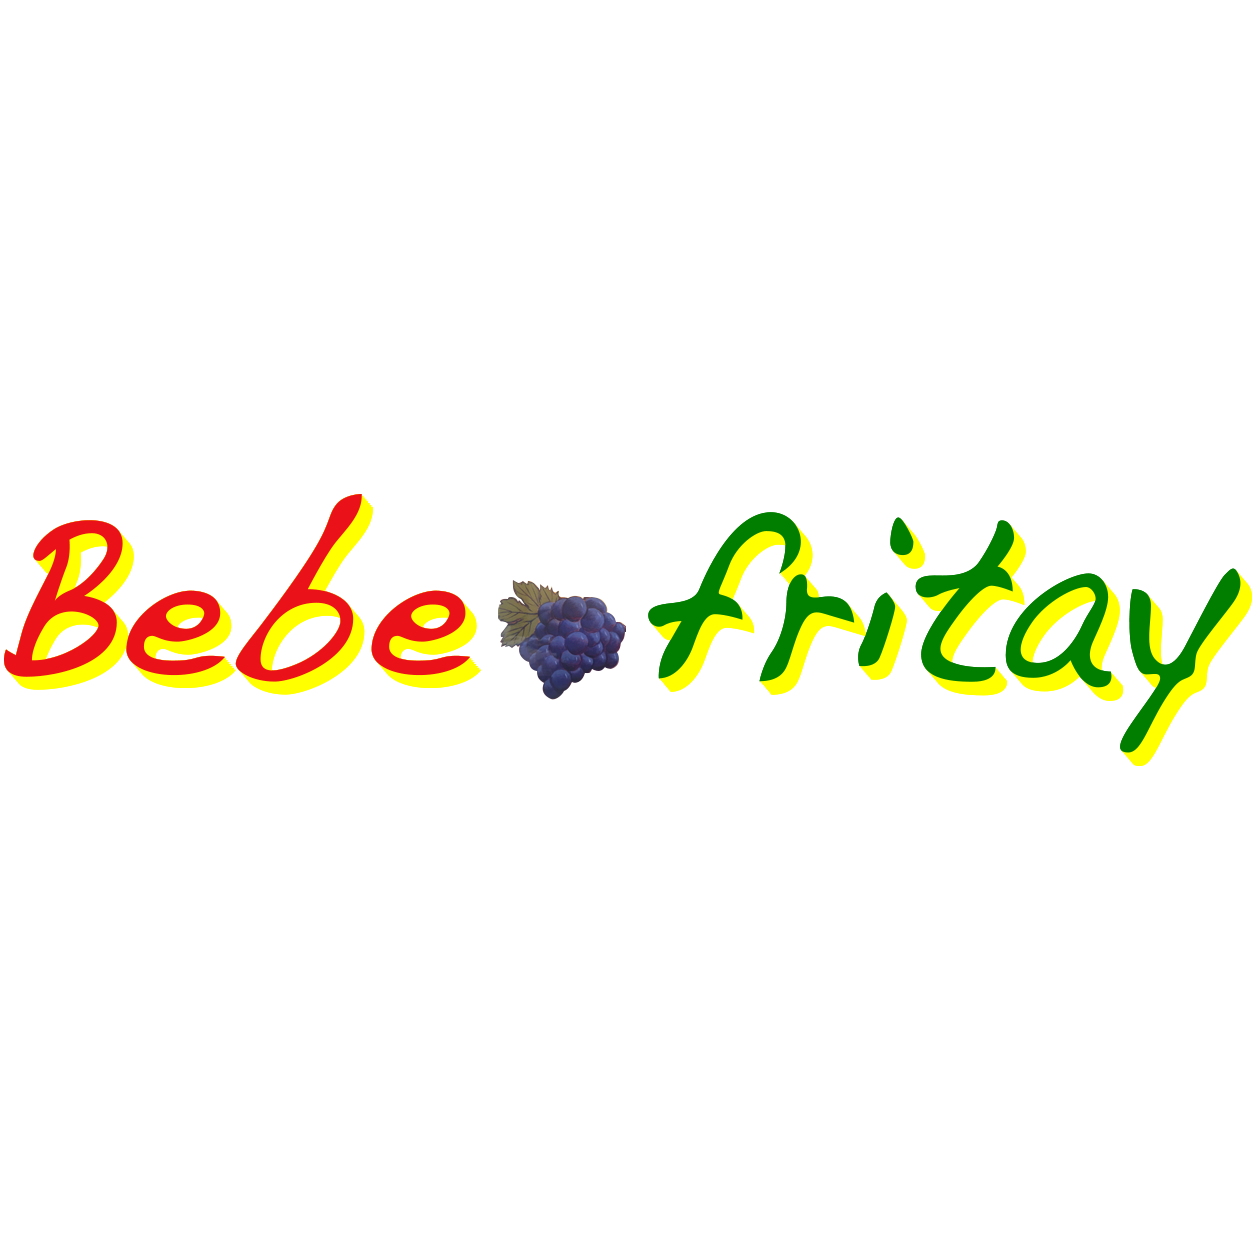 Bebe fritay - Brooklyn, NY 11236 - (718)513-3655 | ShowMeLocal.com